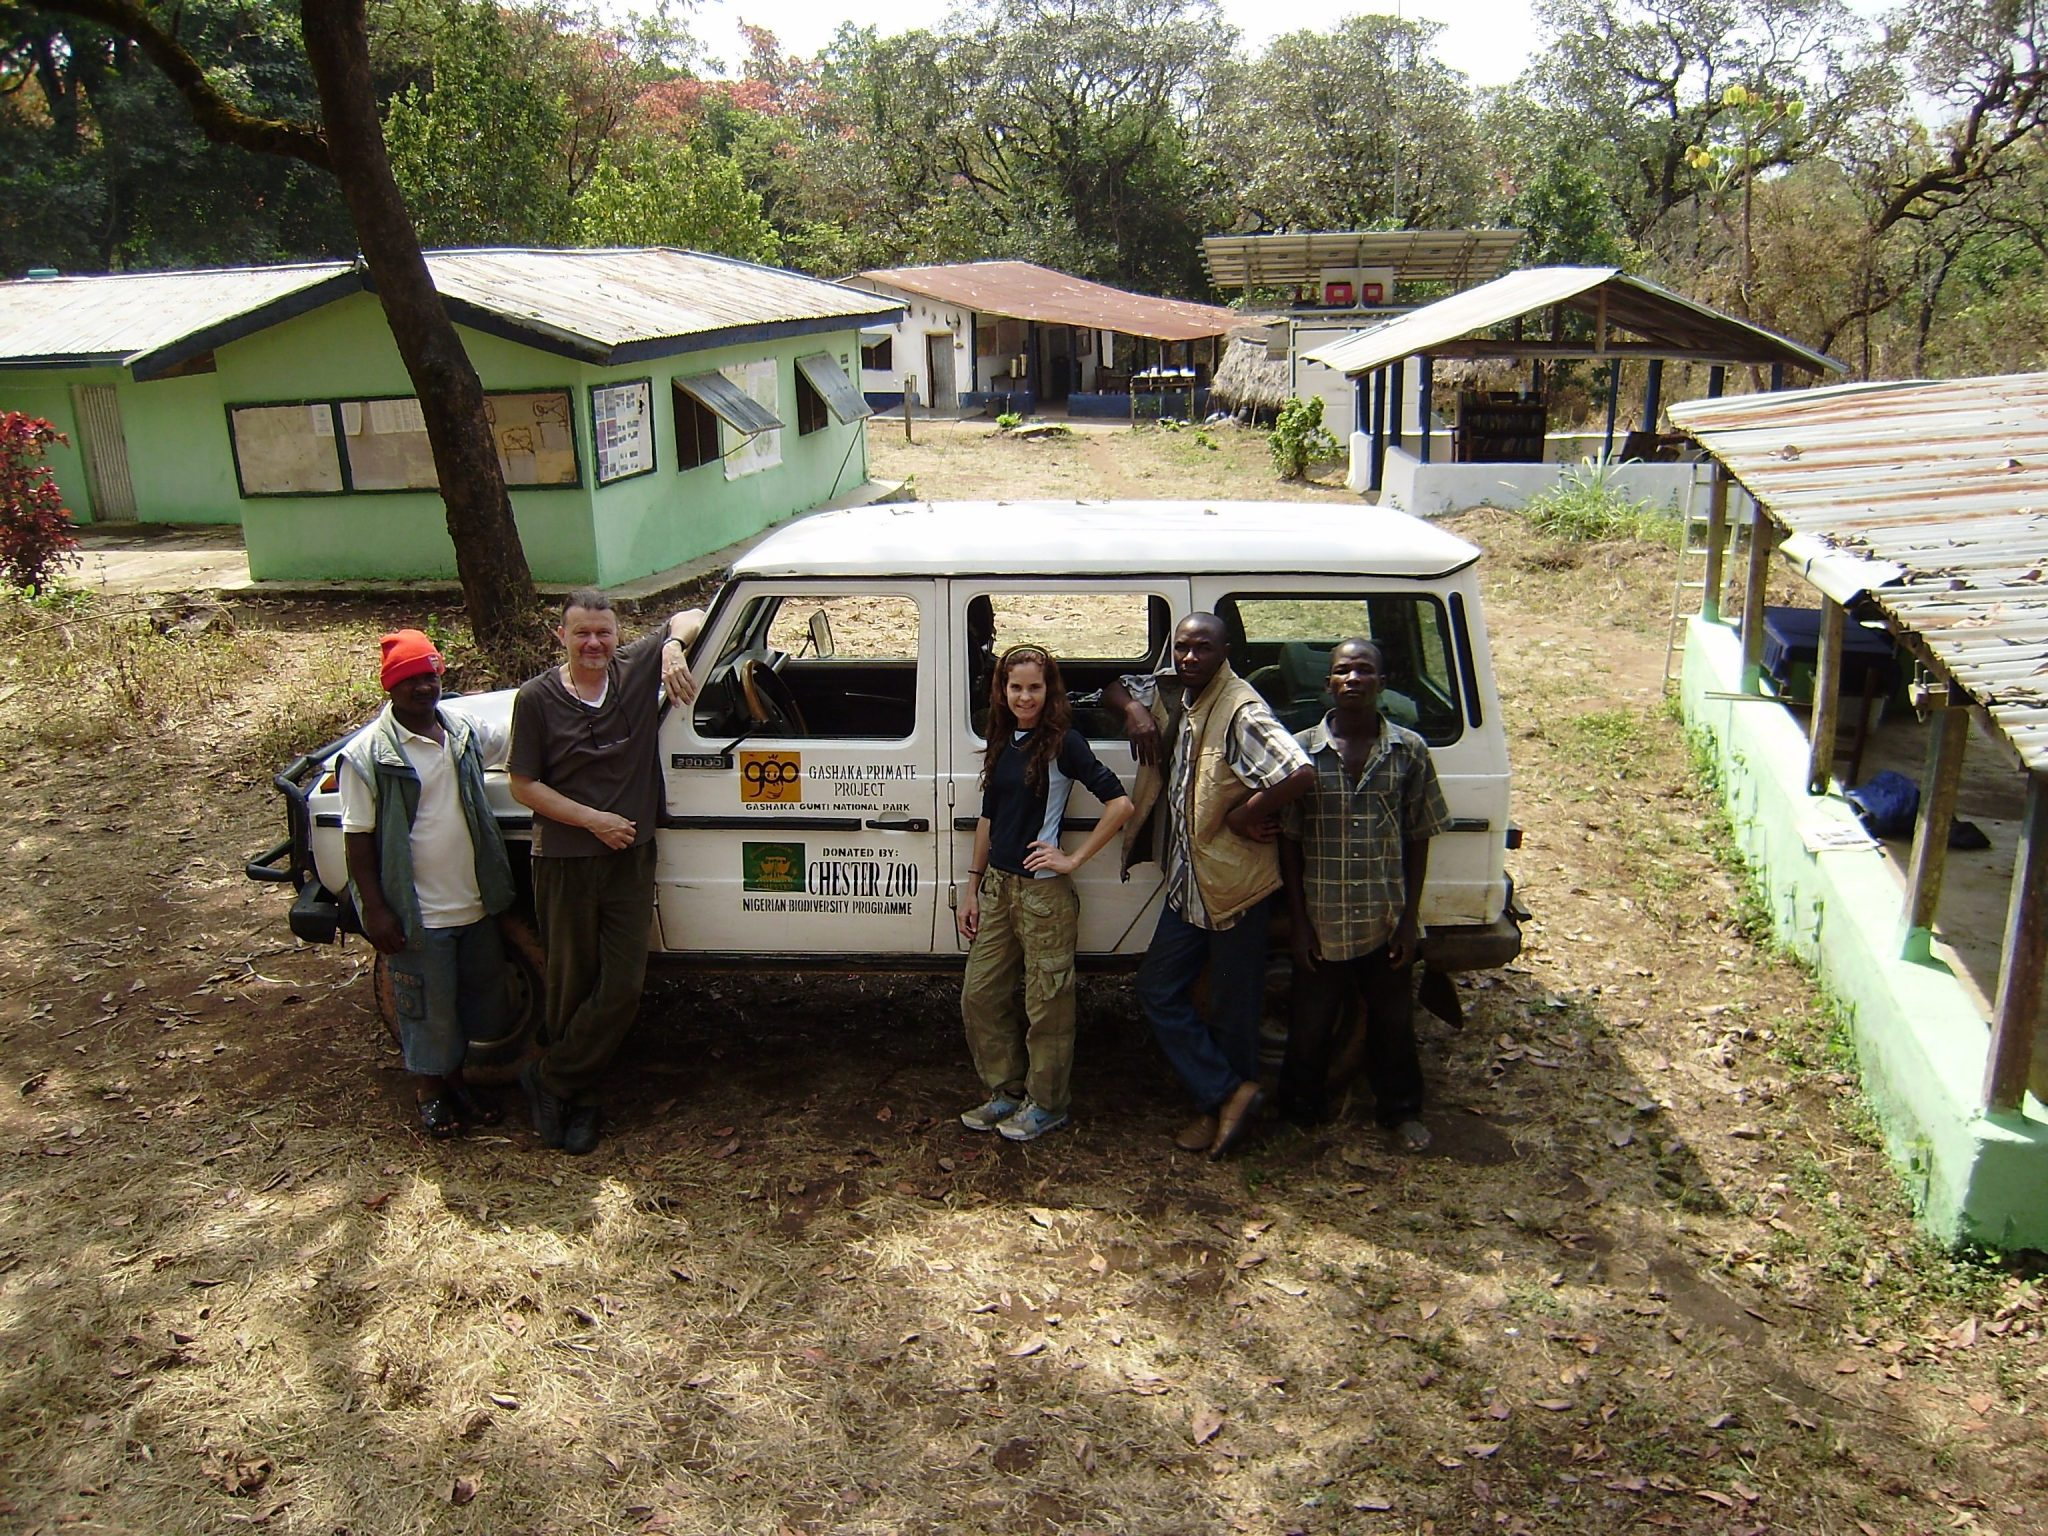 Chester Zoo staff in Nigeria with project team, Africa, Nigeria